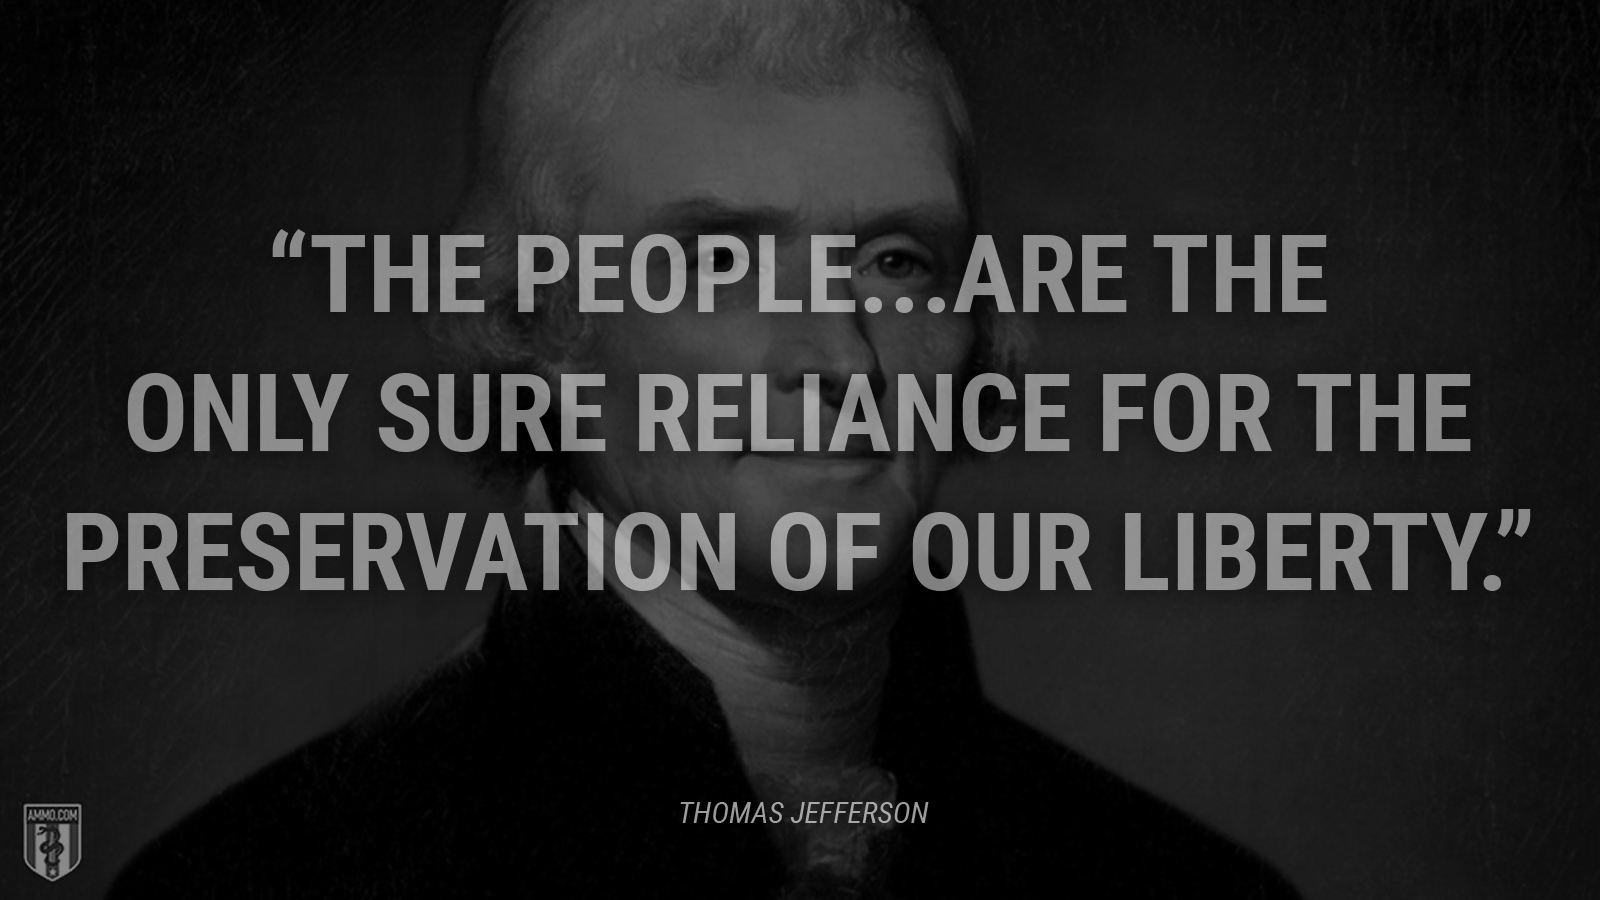 """The people...are the only sure reliance for the preservation of our liberty."" - Thomas Jefferson"